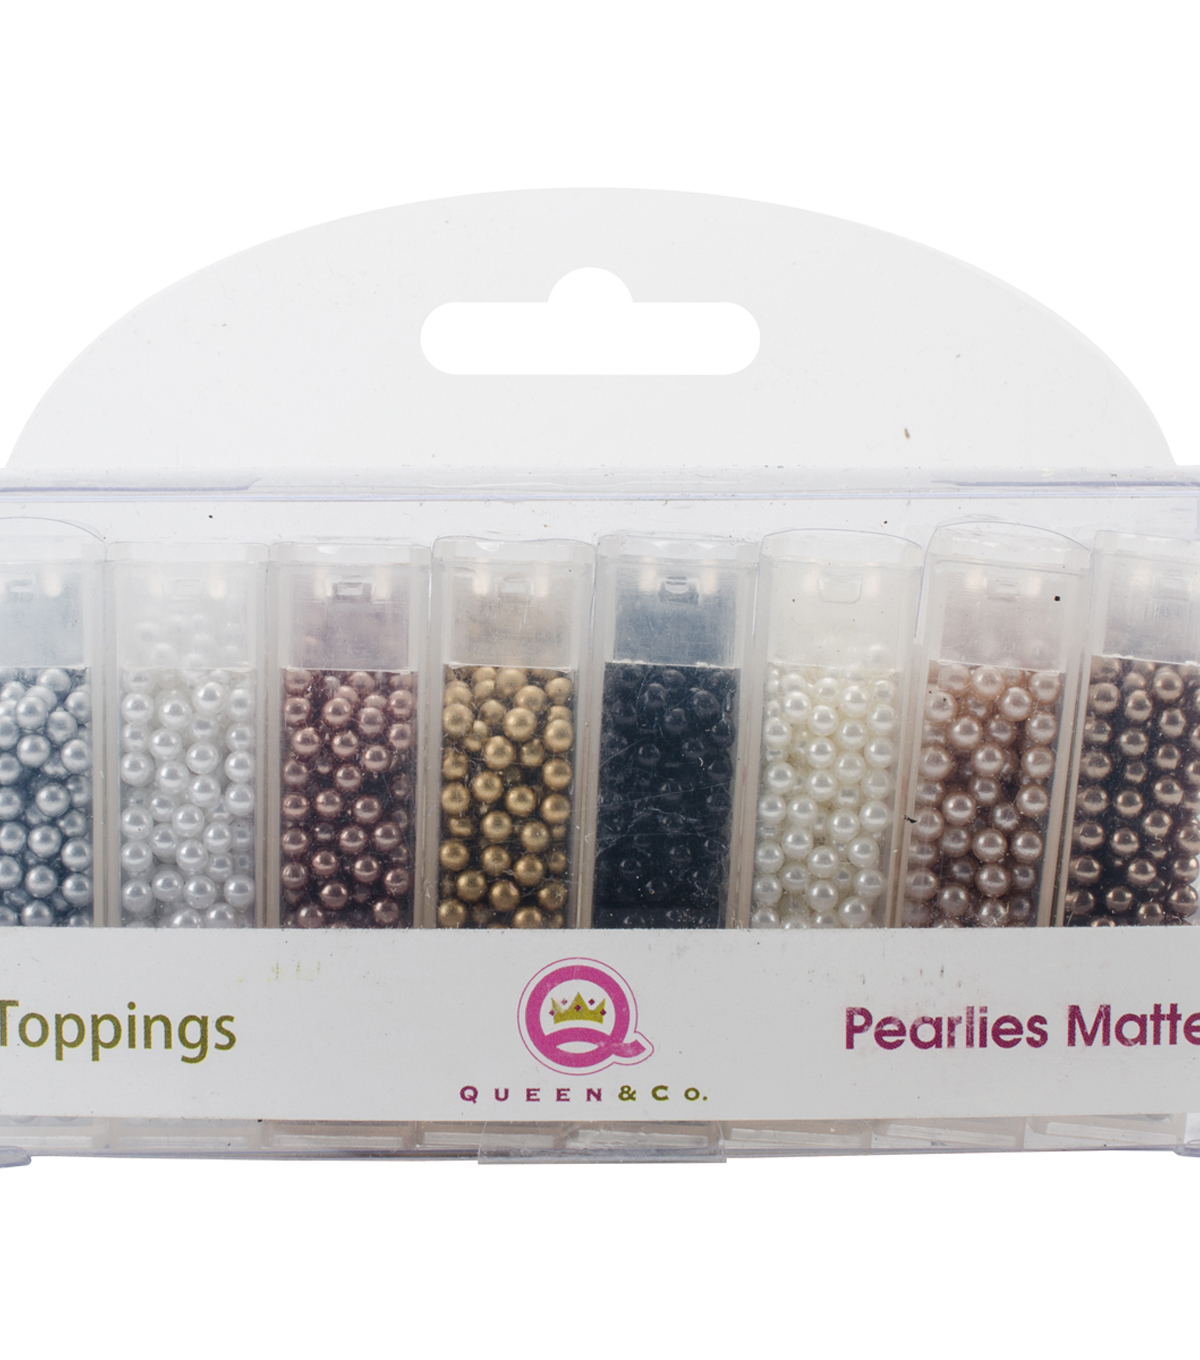 Queen & Co Topping Set-Pearlies Matte